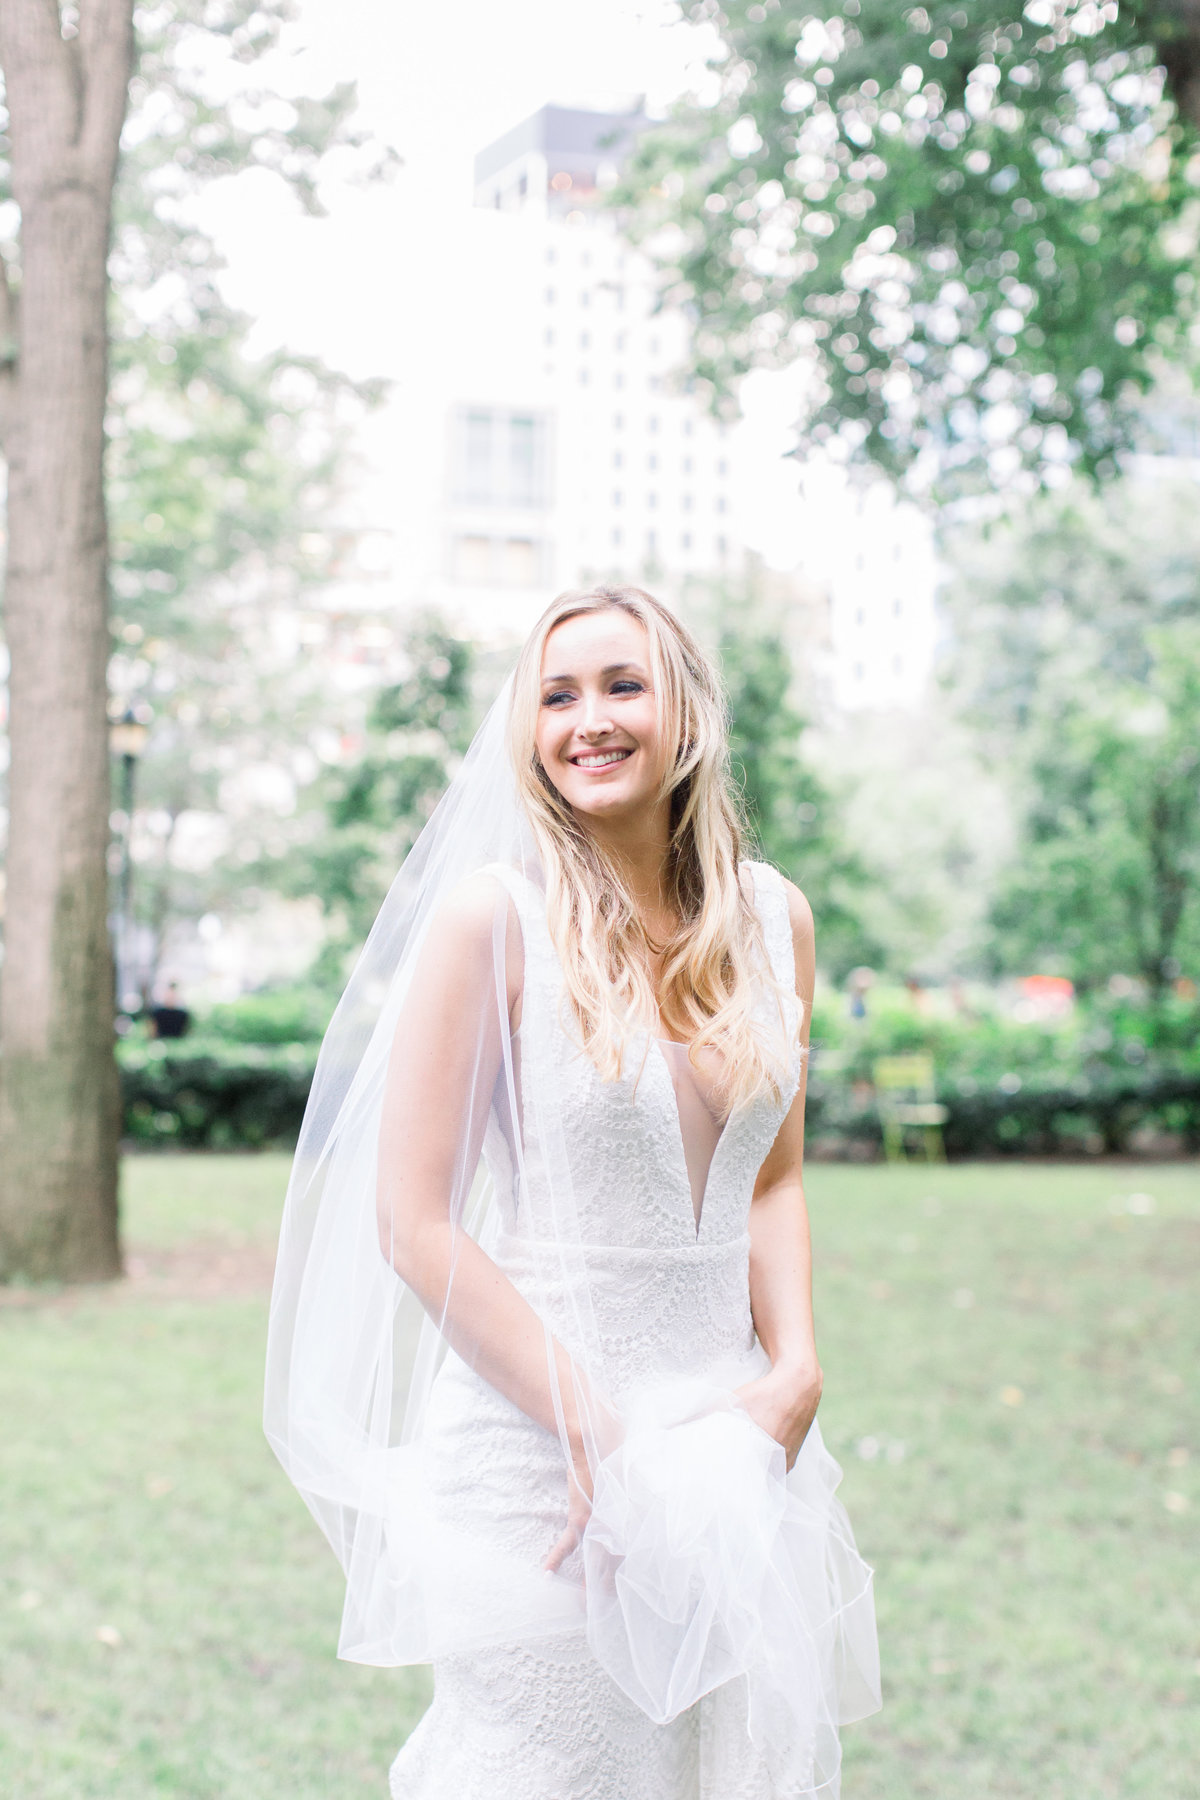 Karina-Mekel-NYC-Union Square-Wedding-2